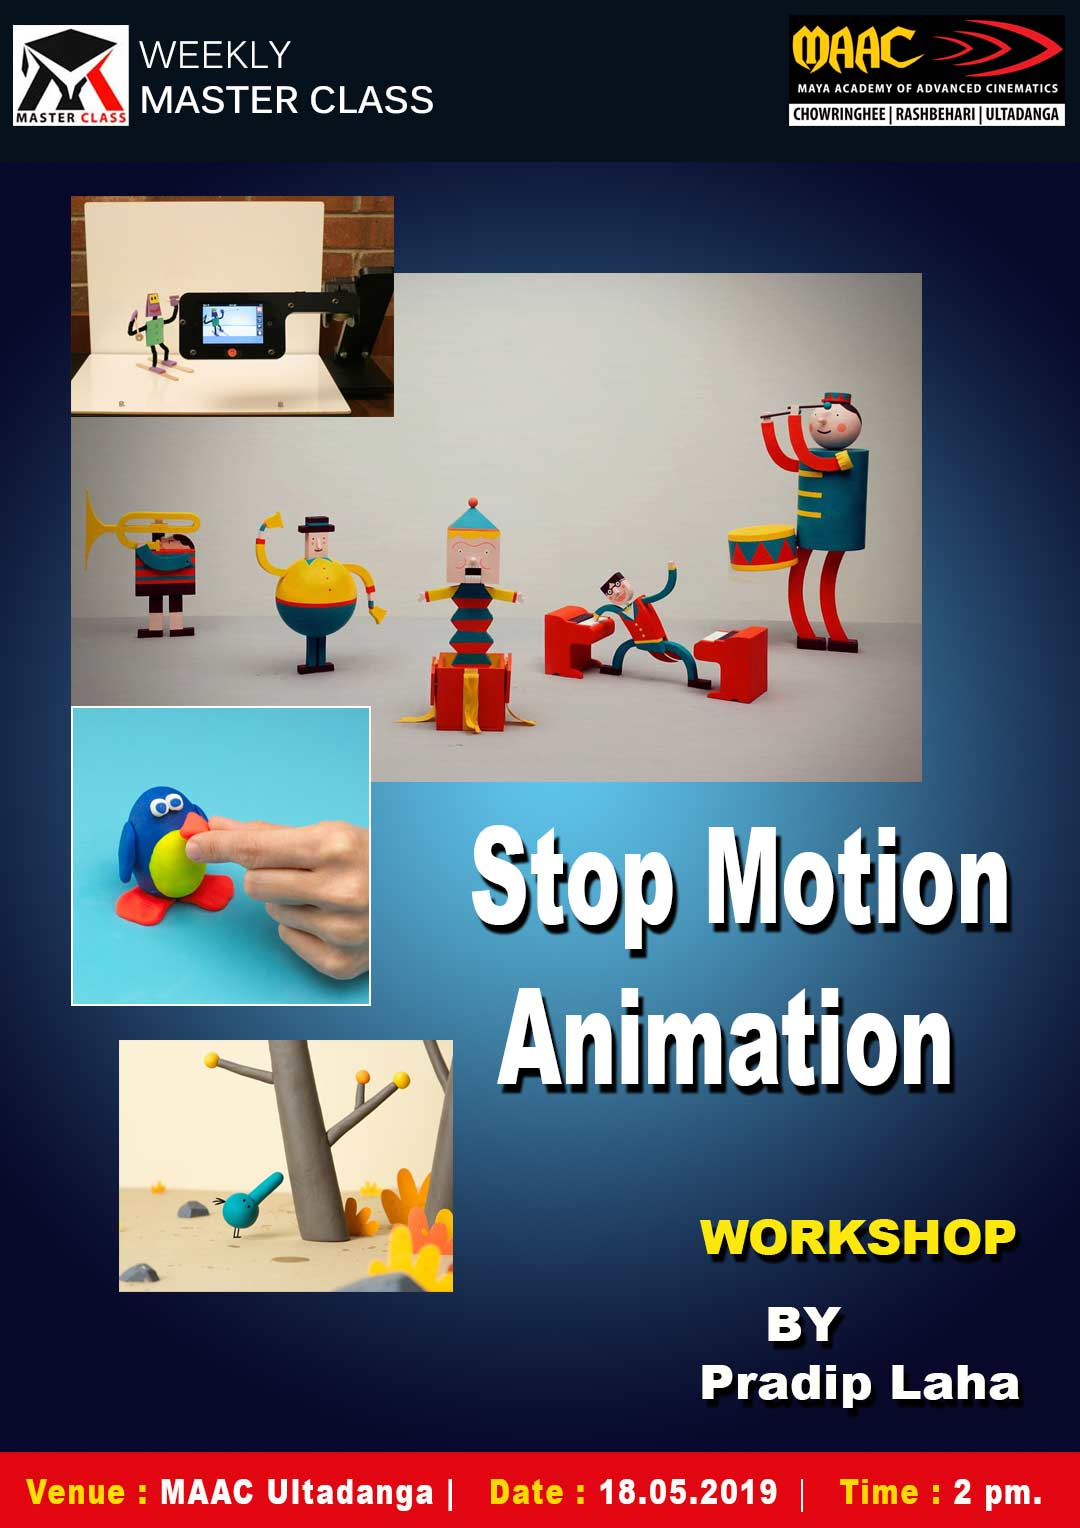 Weekly Master Class on Stop Motion Animation